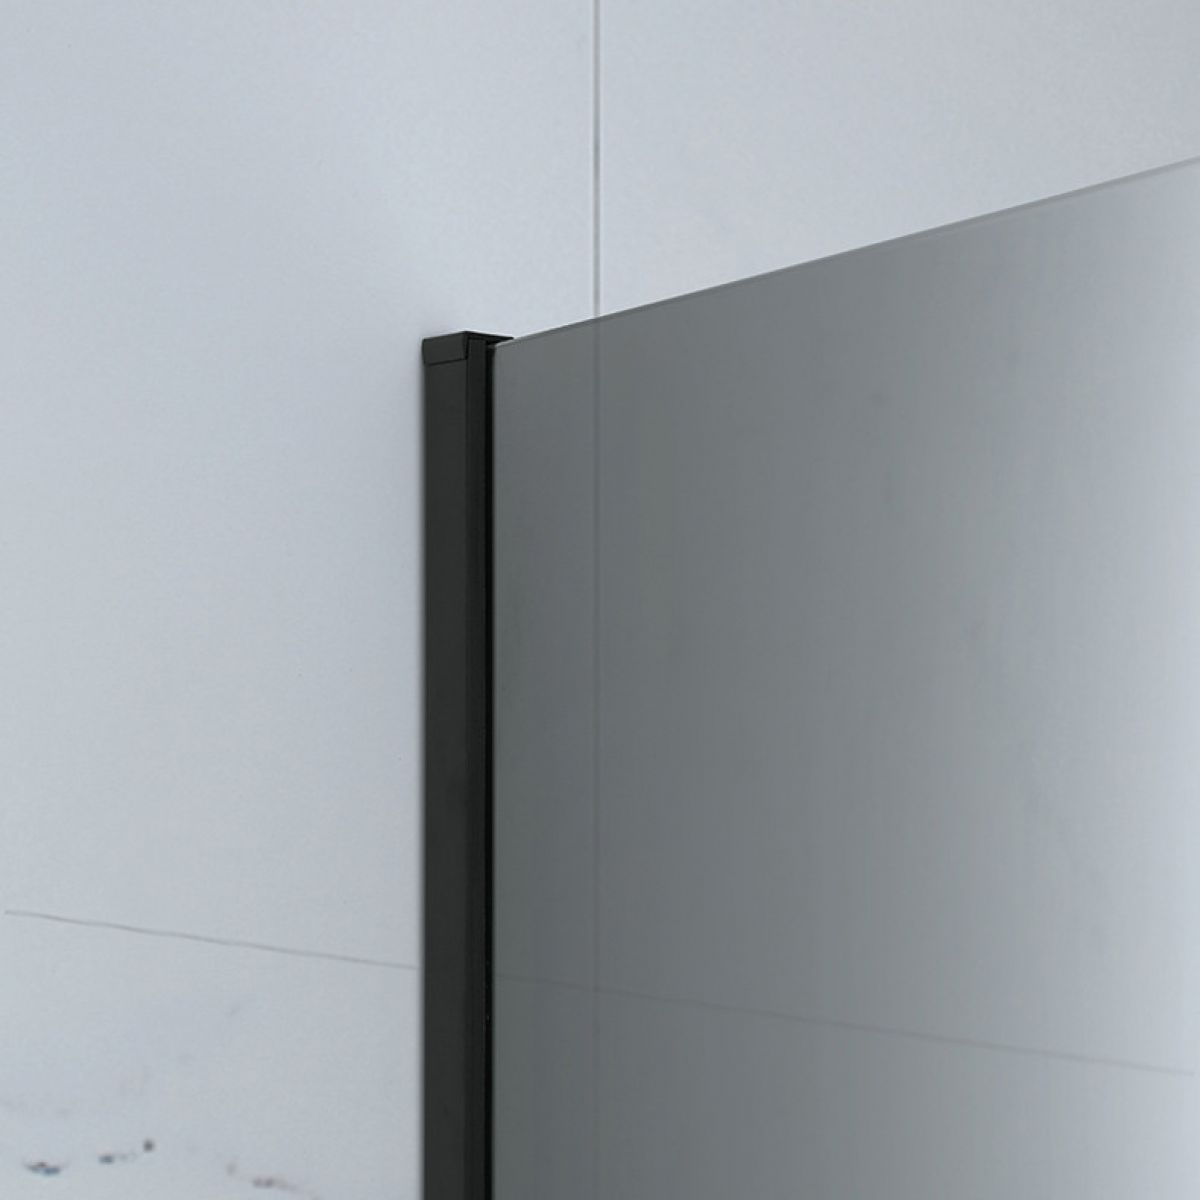 Frontline Aquaglass Mono Black Frosted Shower Screen Wall Profile